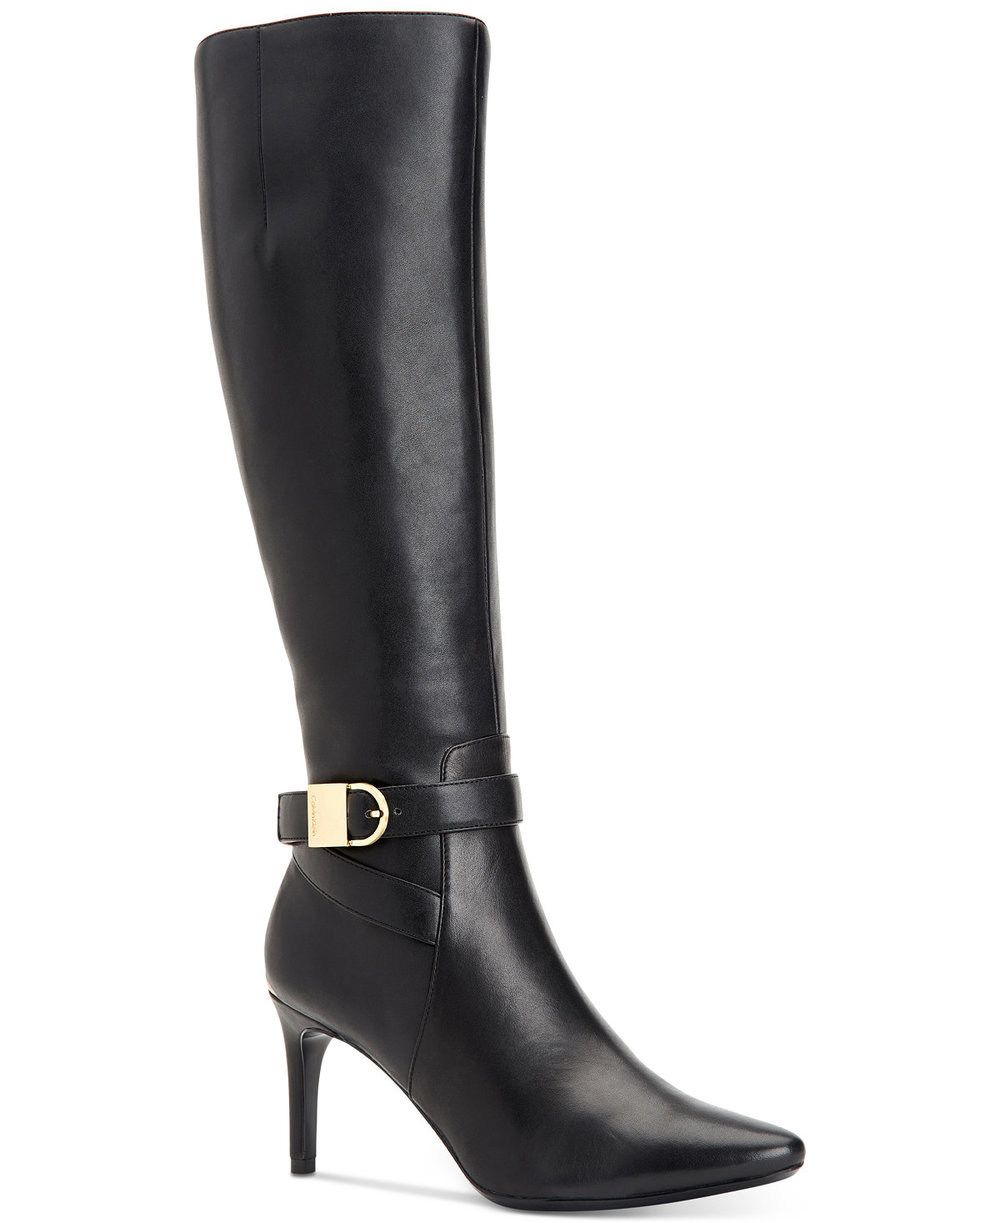 "https://www.macys.com/shop/product/calvin-klein-jemamine-wide-calf-tall-dress-boots-created-for-macys?ID=5276319&CategoryID=25122#fn=SIZE%3DWOMEN_SHOE_SIZE_T%3A7.5%26BOOTS_TYPE%3DDress Boots%26BOOT_HEIGHT%3DTall%26COLOR%3DBlack;;Blue%26HEEL%3DLow 1-2"";;Mid 2-3""%26sp%3D1%26spc%3D31%26ruleId%3D78